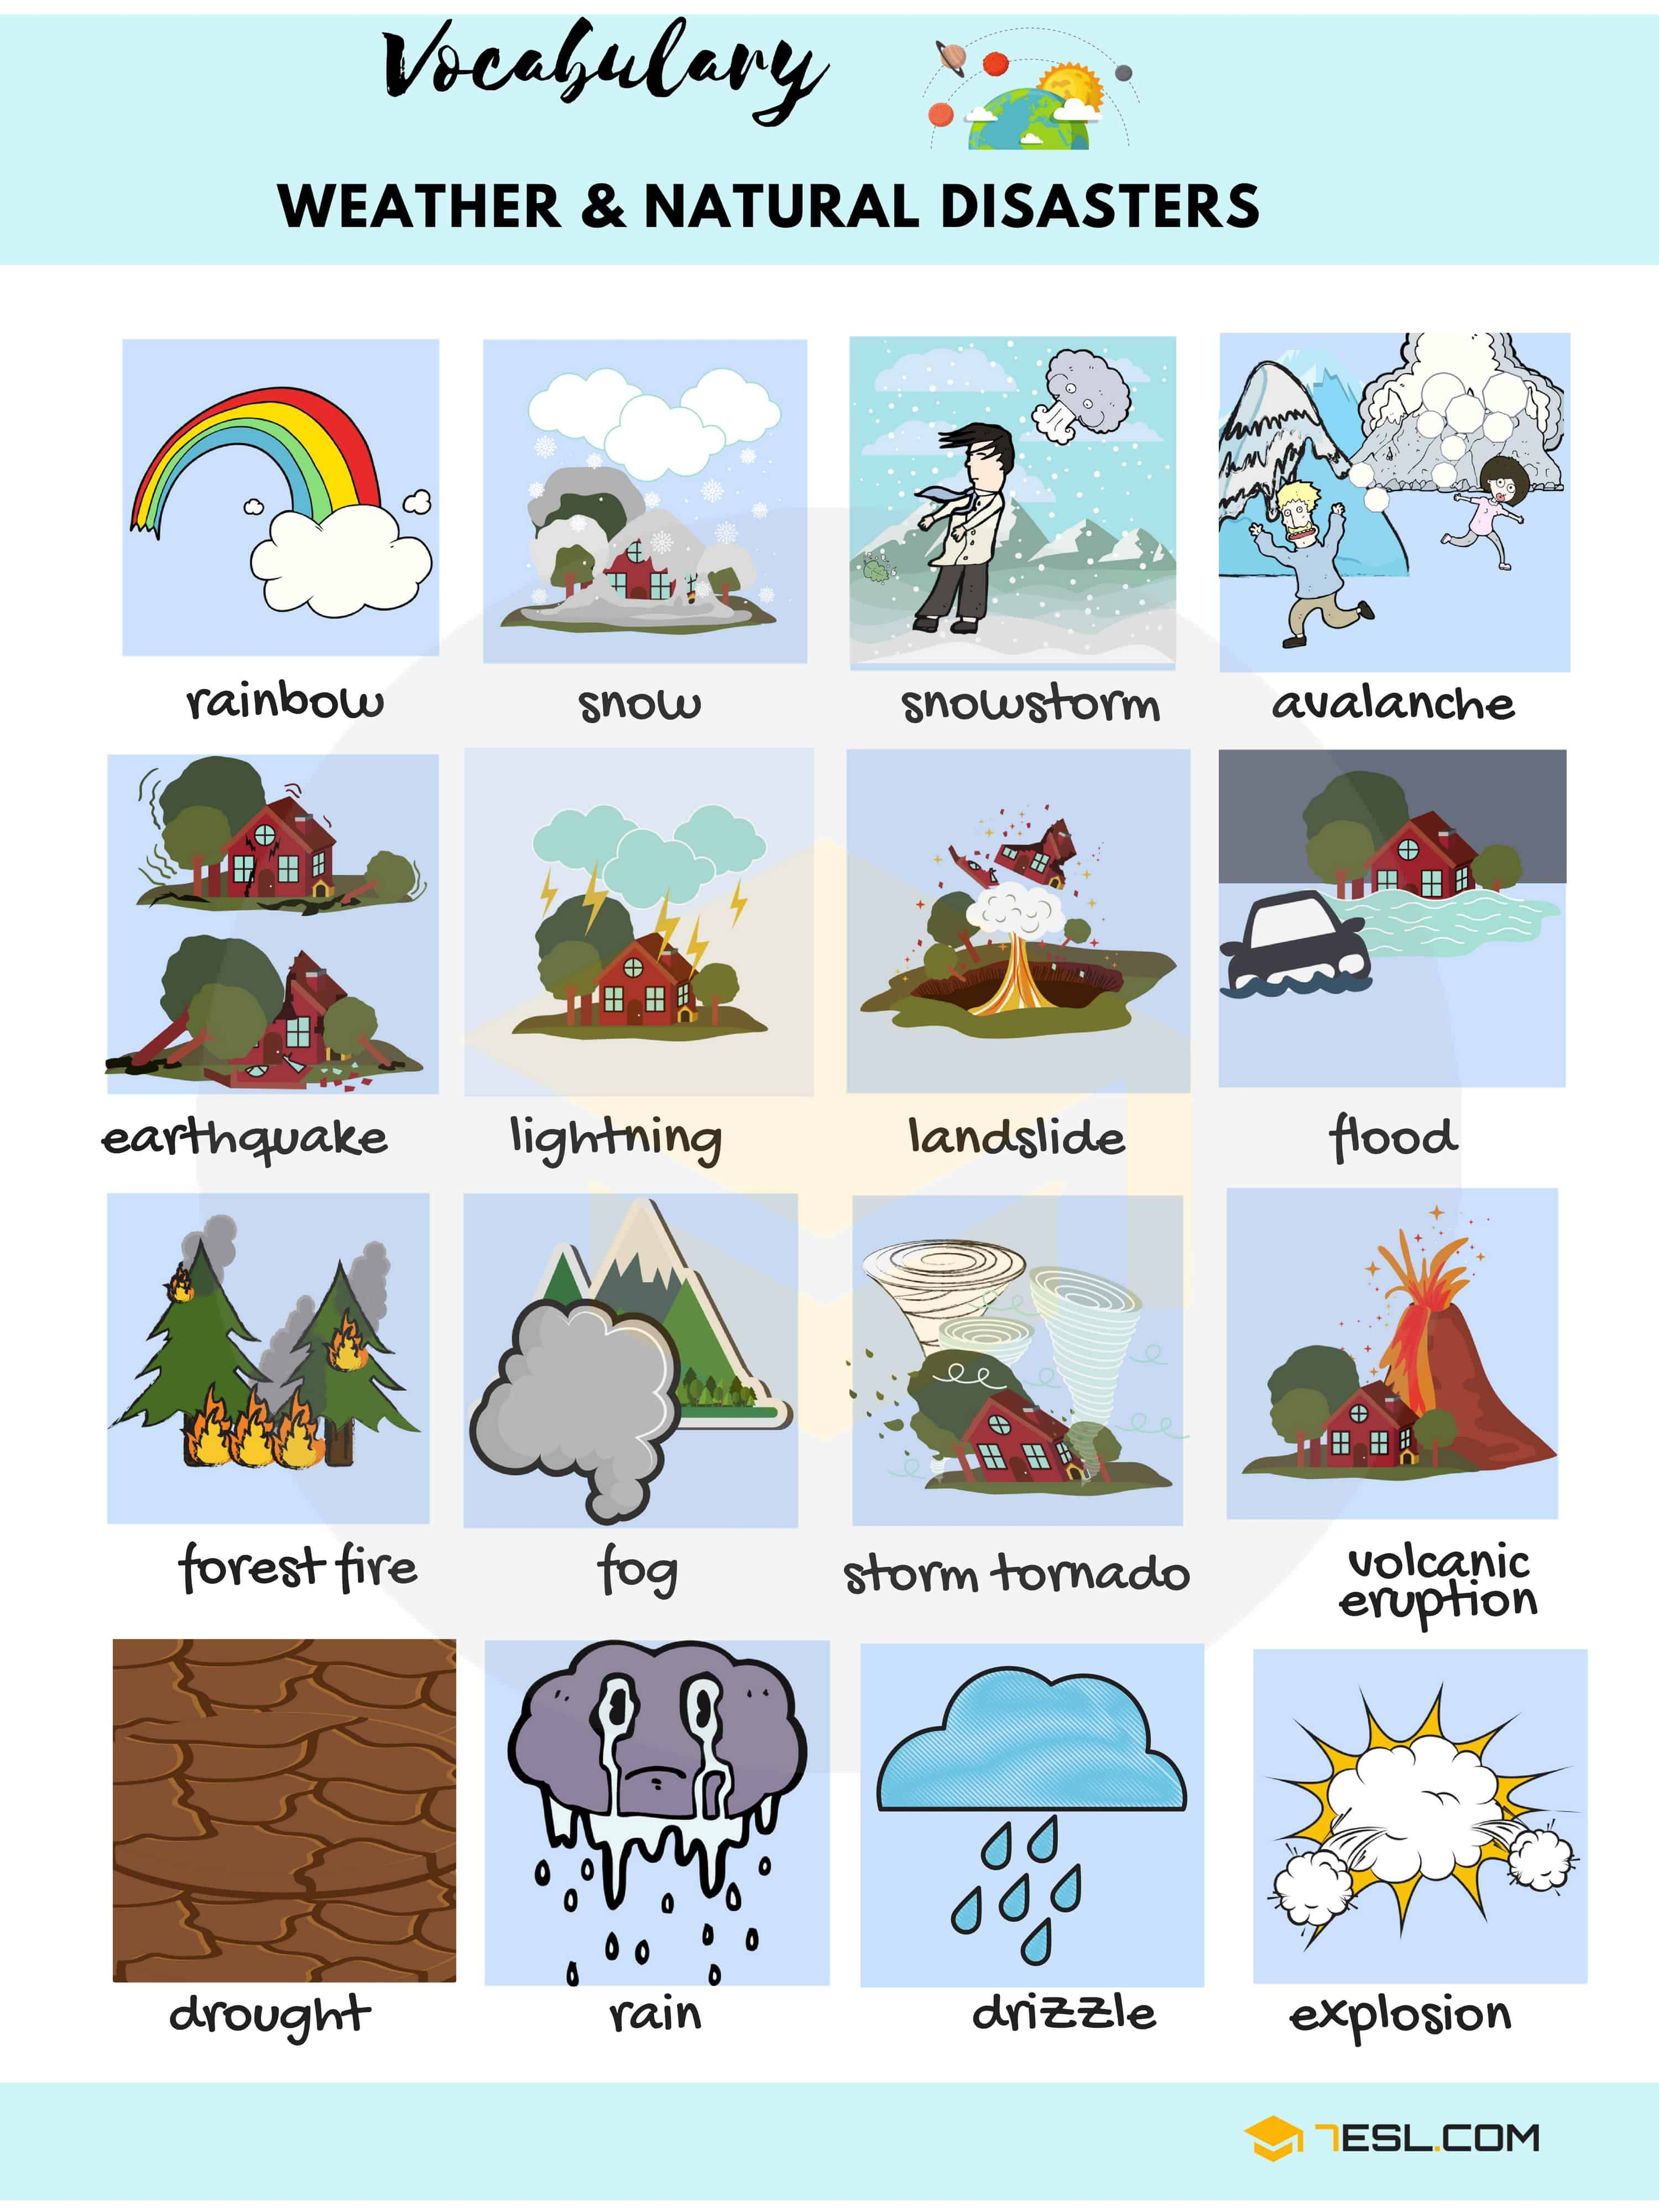 Natural Disasters List With Pictures And Examples 7 E S L English Vocabulary Vocabulary Natural Disasters